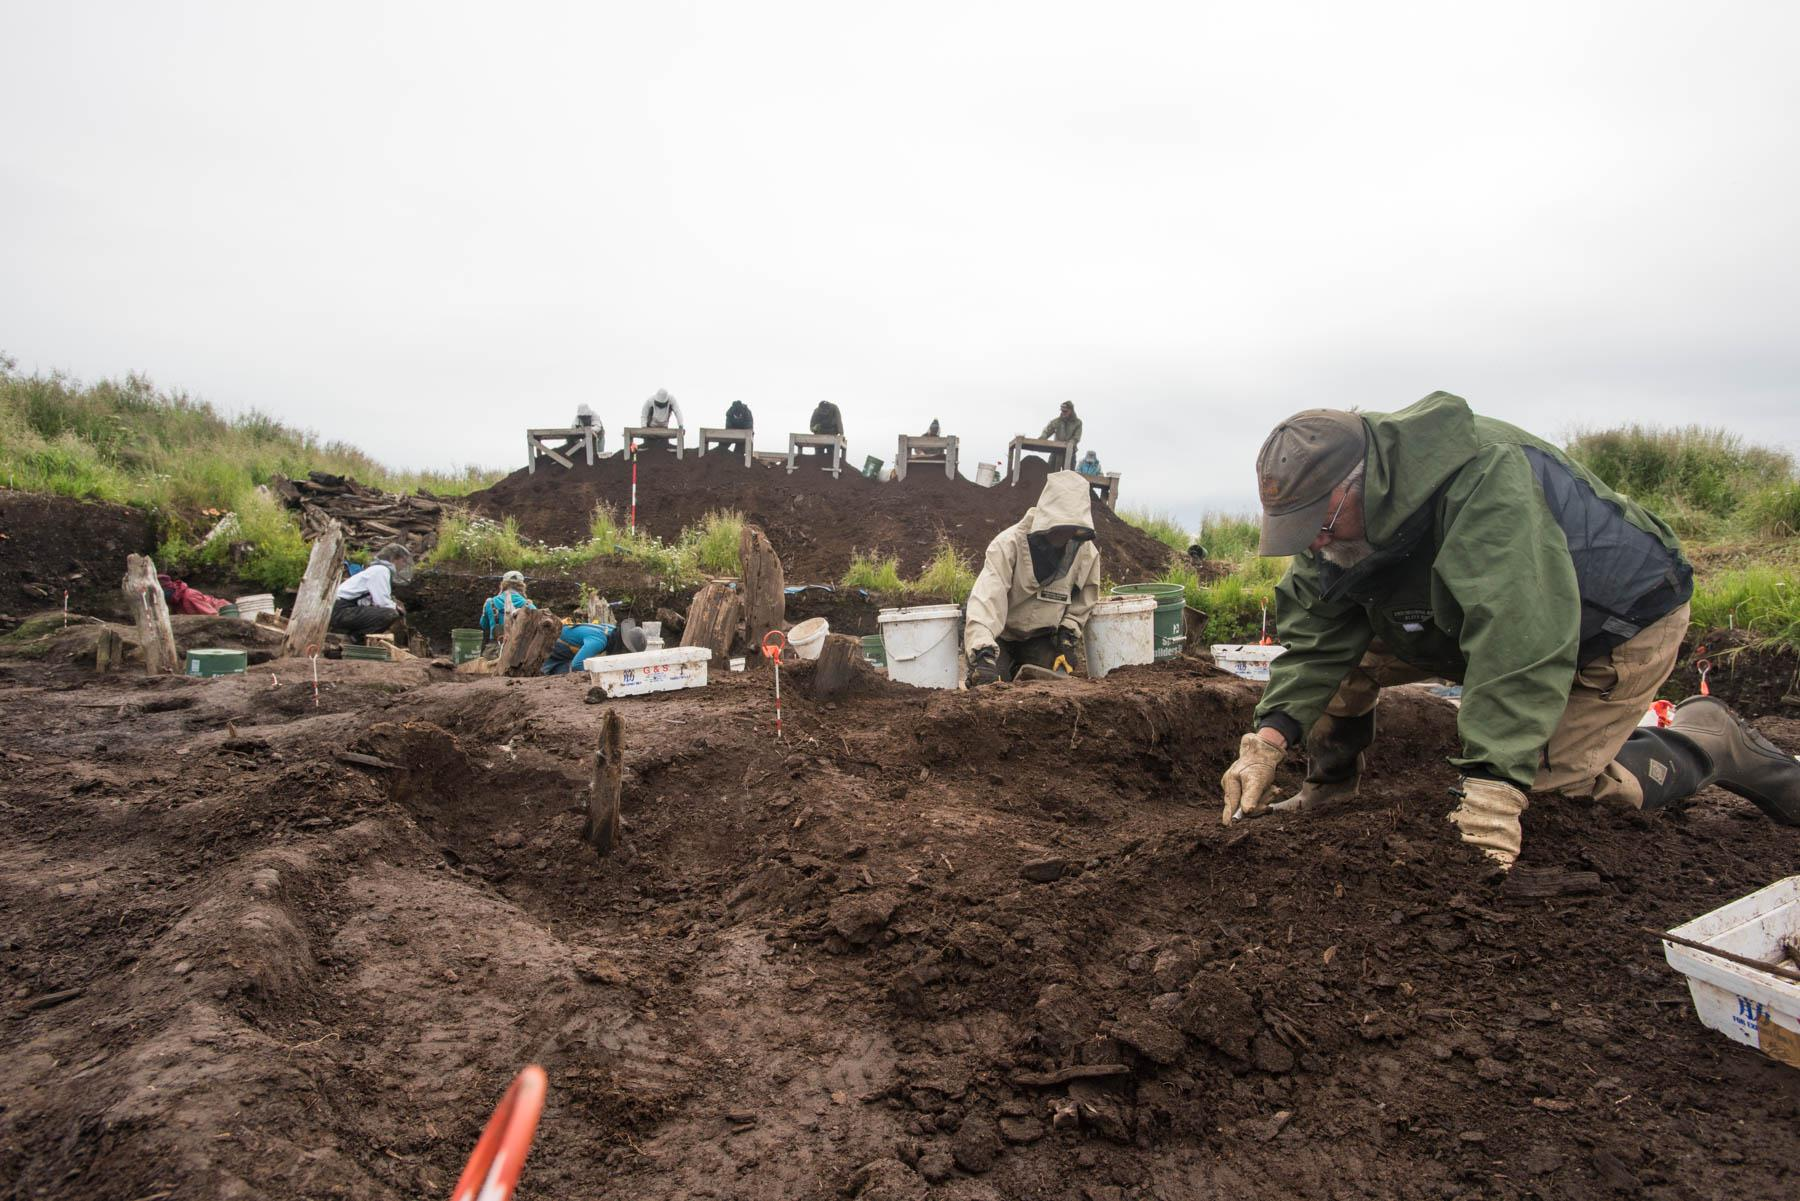 Dr. Rick Knecht digs July 24, 2018, at the Nunalleq site. (Photo by Katie Basile/KYUK)